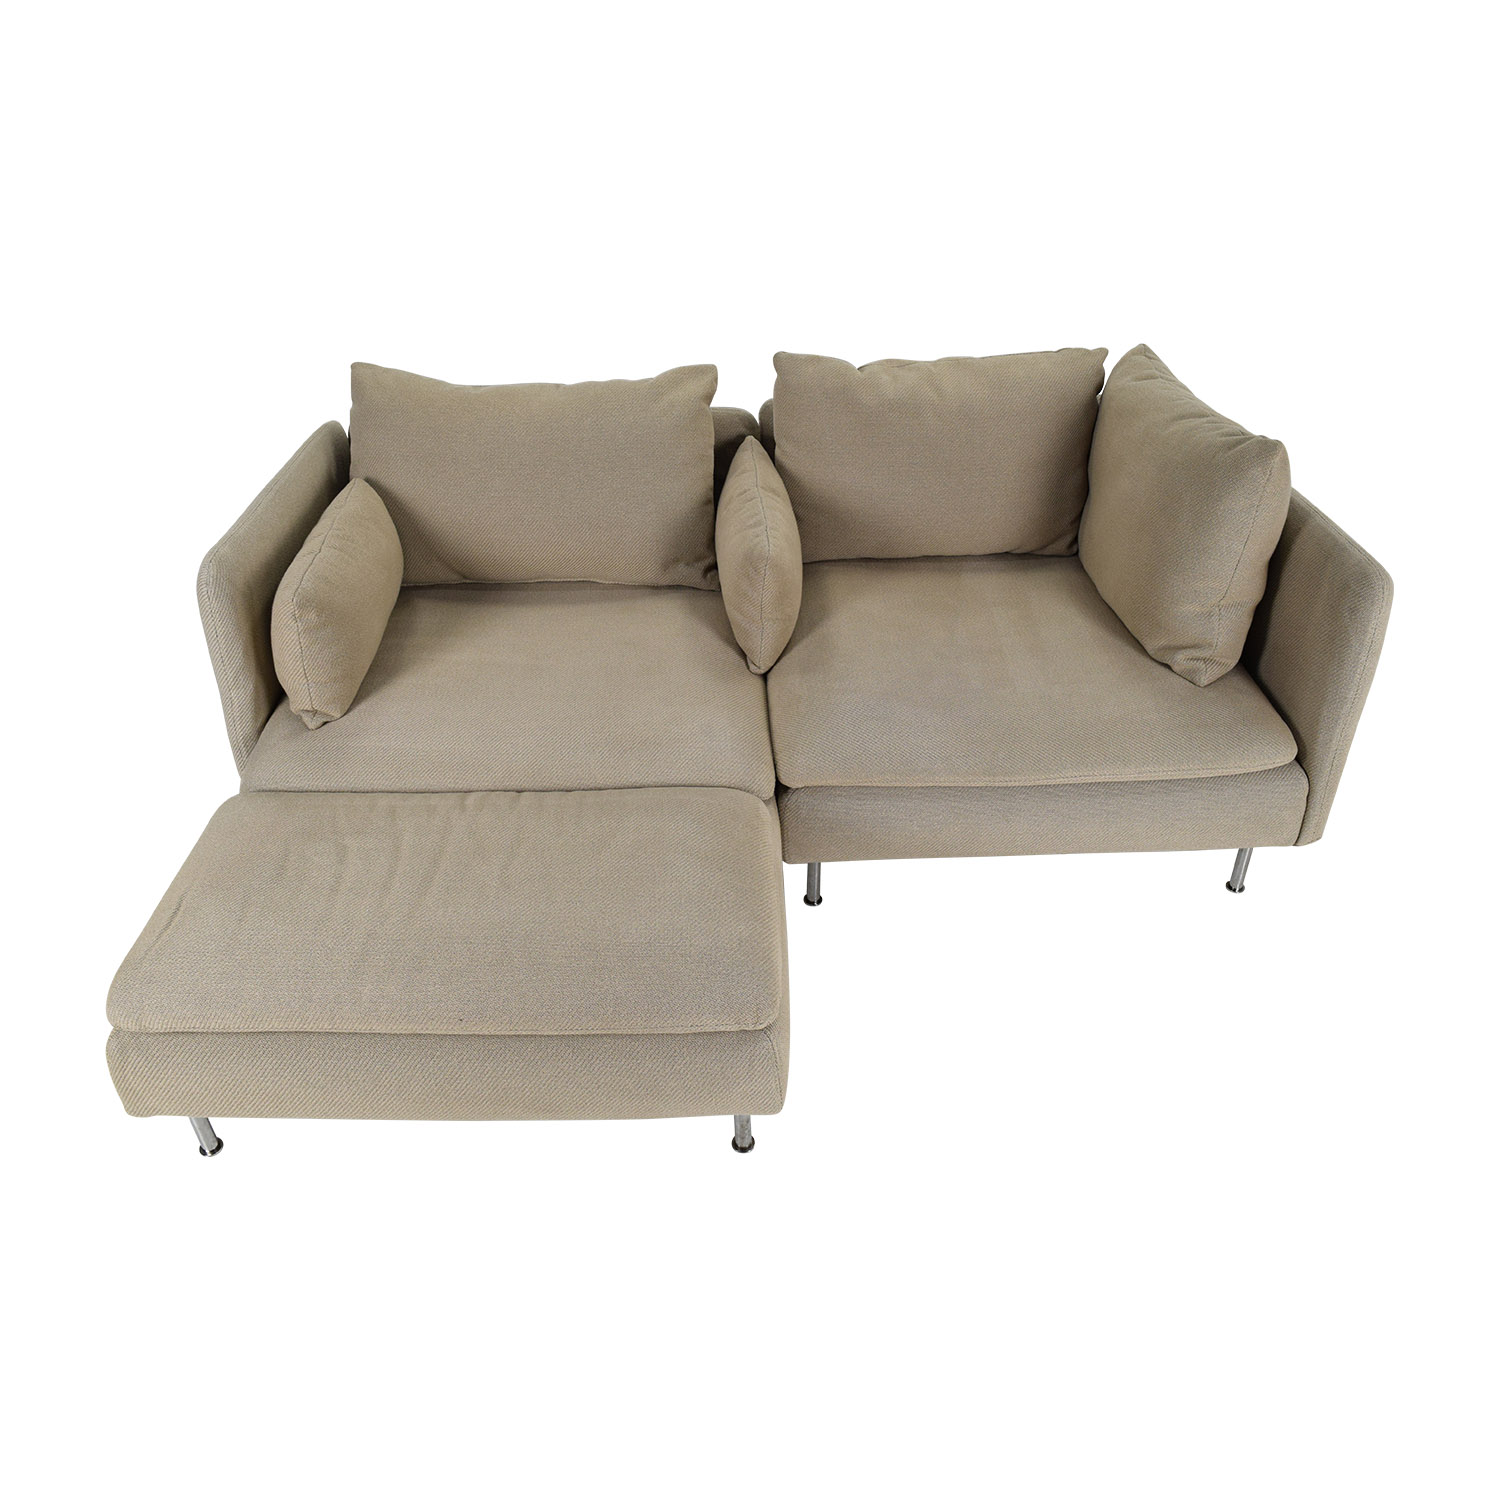 Ikea Sofa Japan Ike Sofas Gallery Of Sofa With Ike Sofas Stunning Ike